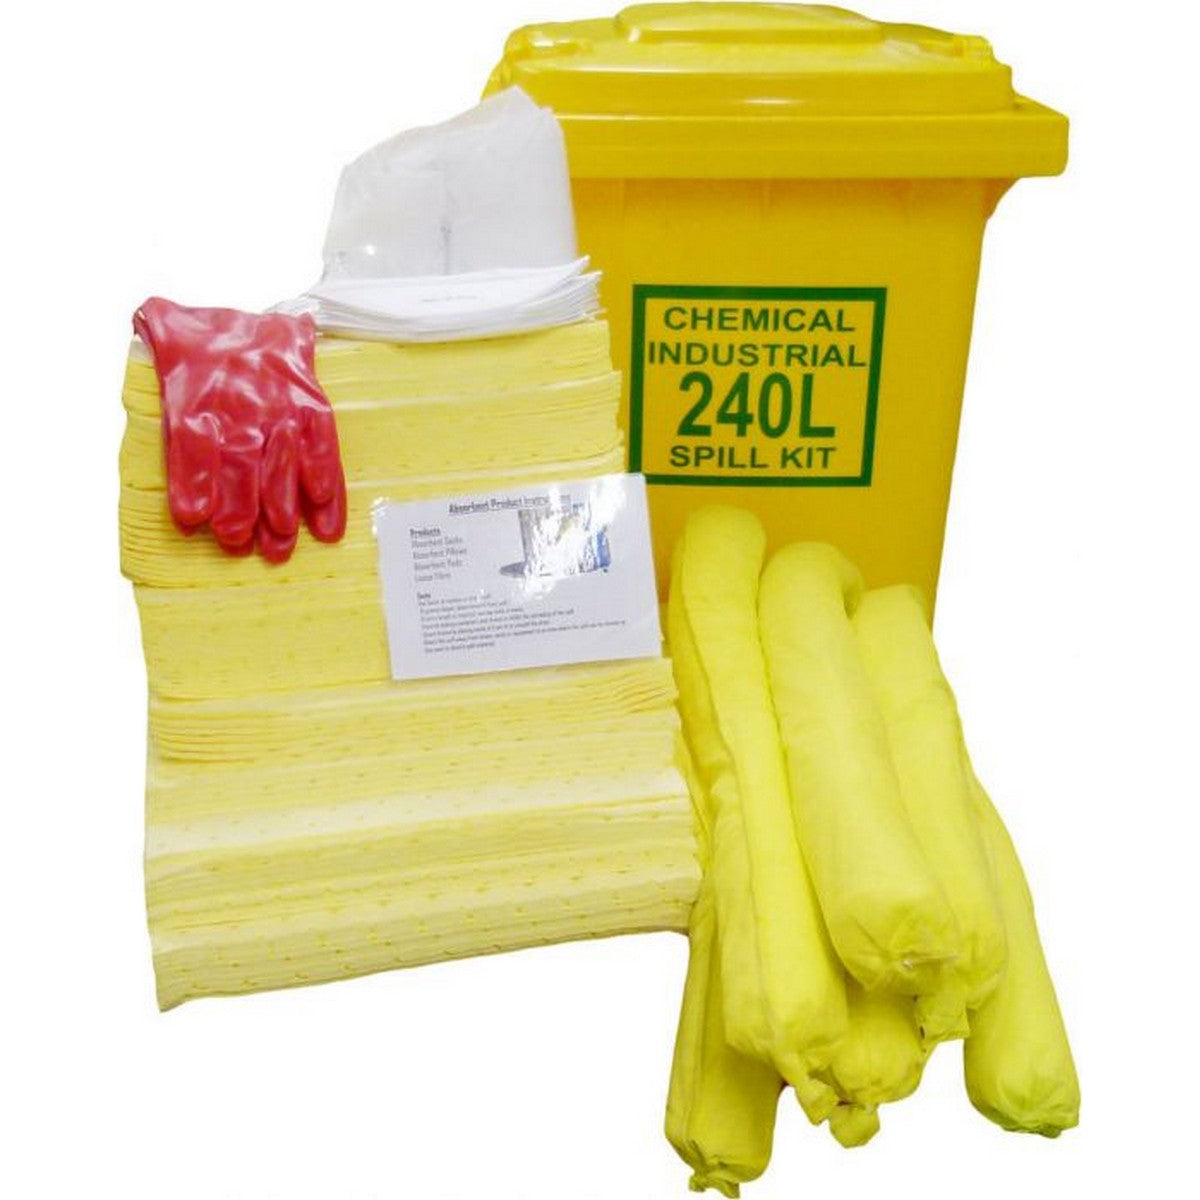 Image of QS Chemical 240L Spill Kit